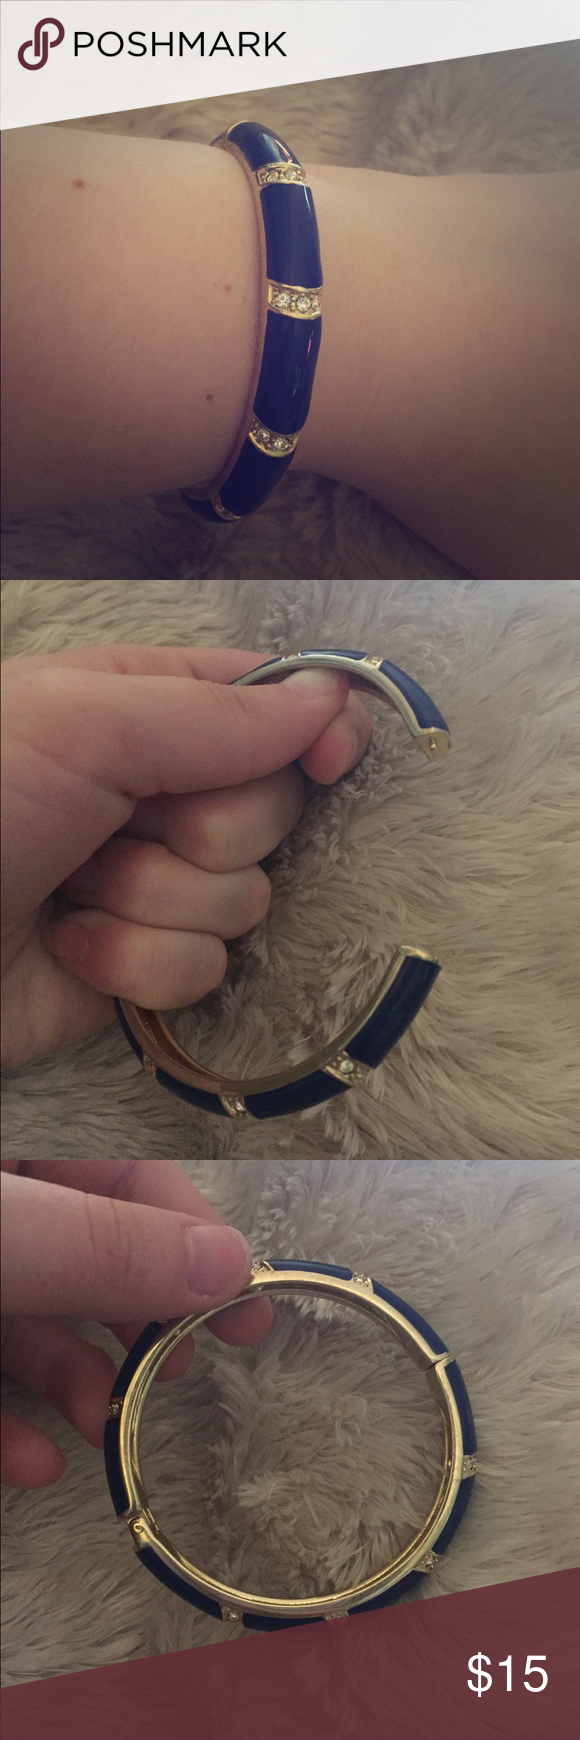 Navy and CZ Diamond Bracelet with Gold Band This adorable bracelet would go well with practically anything. It clamps shut and opens smoothly. It is in perfect condition, never worn but doesn't have tags or box. **bundle to save** Jewelry Bracelets